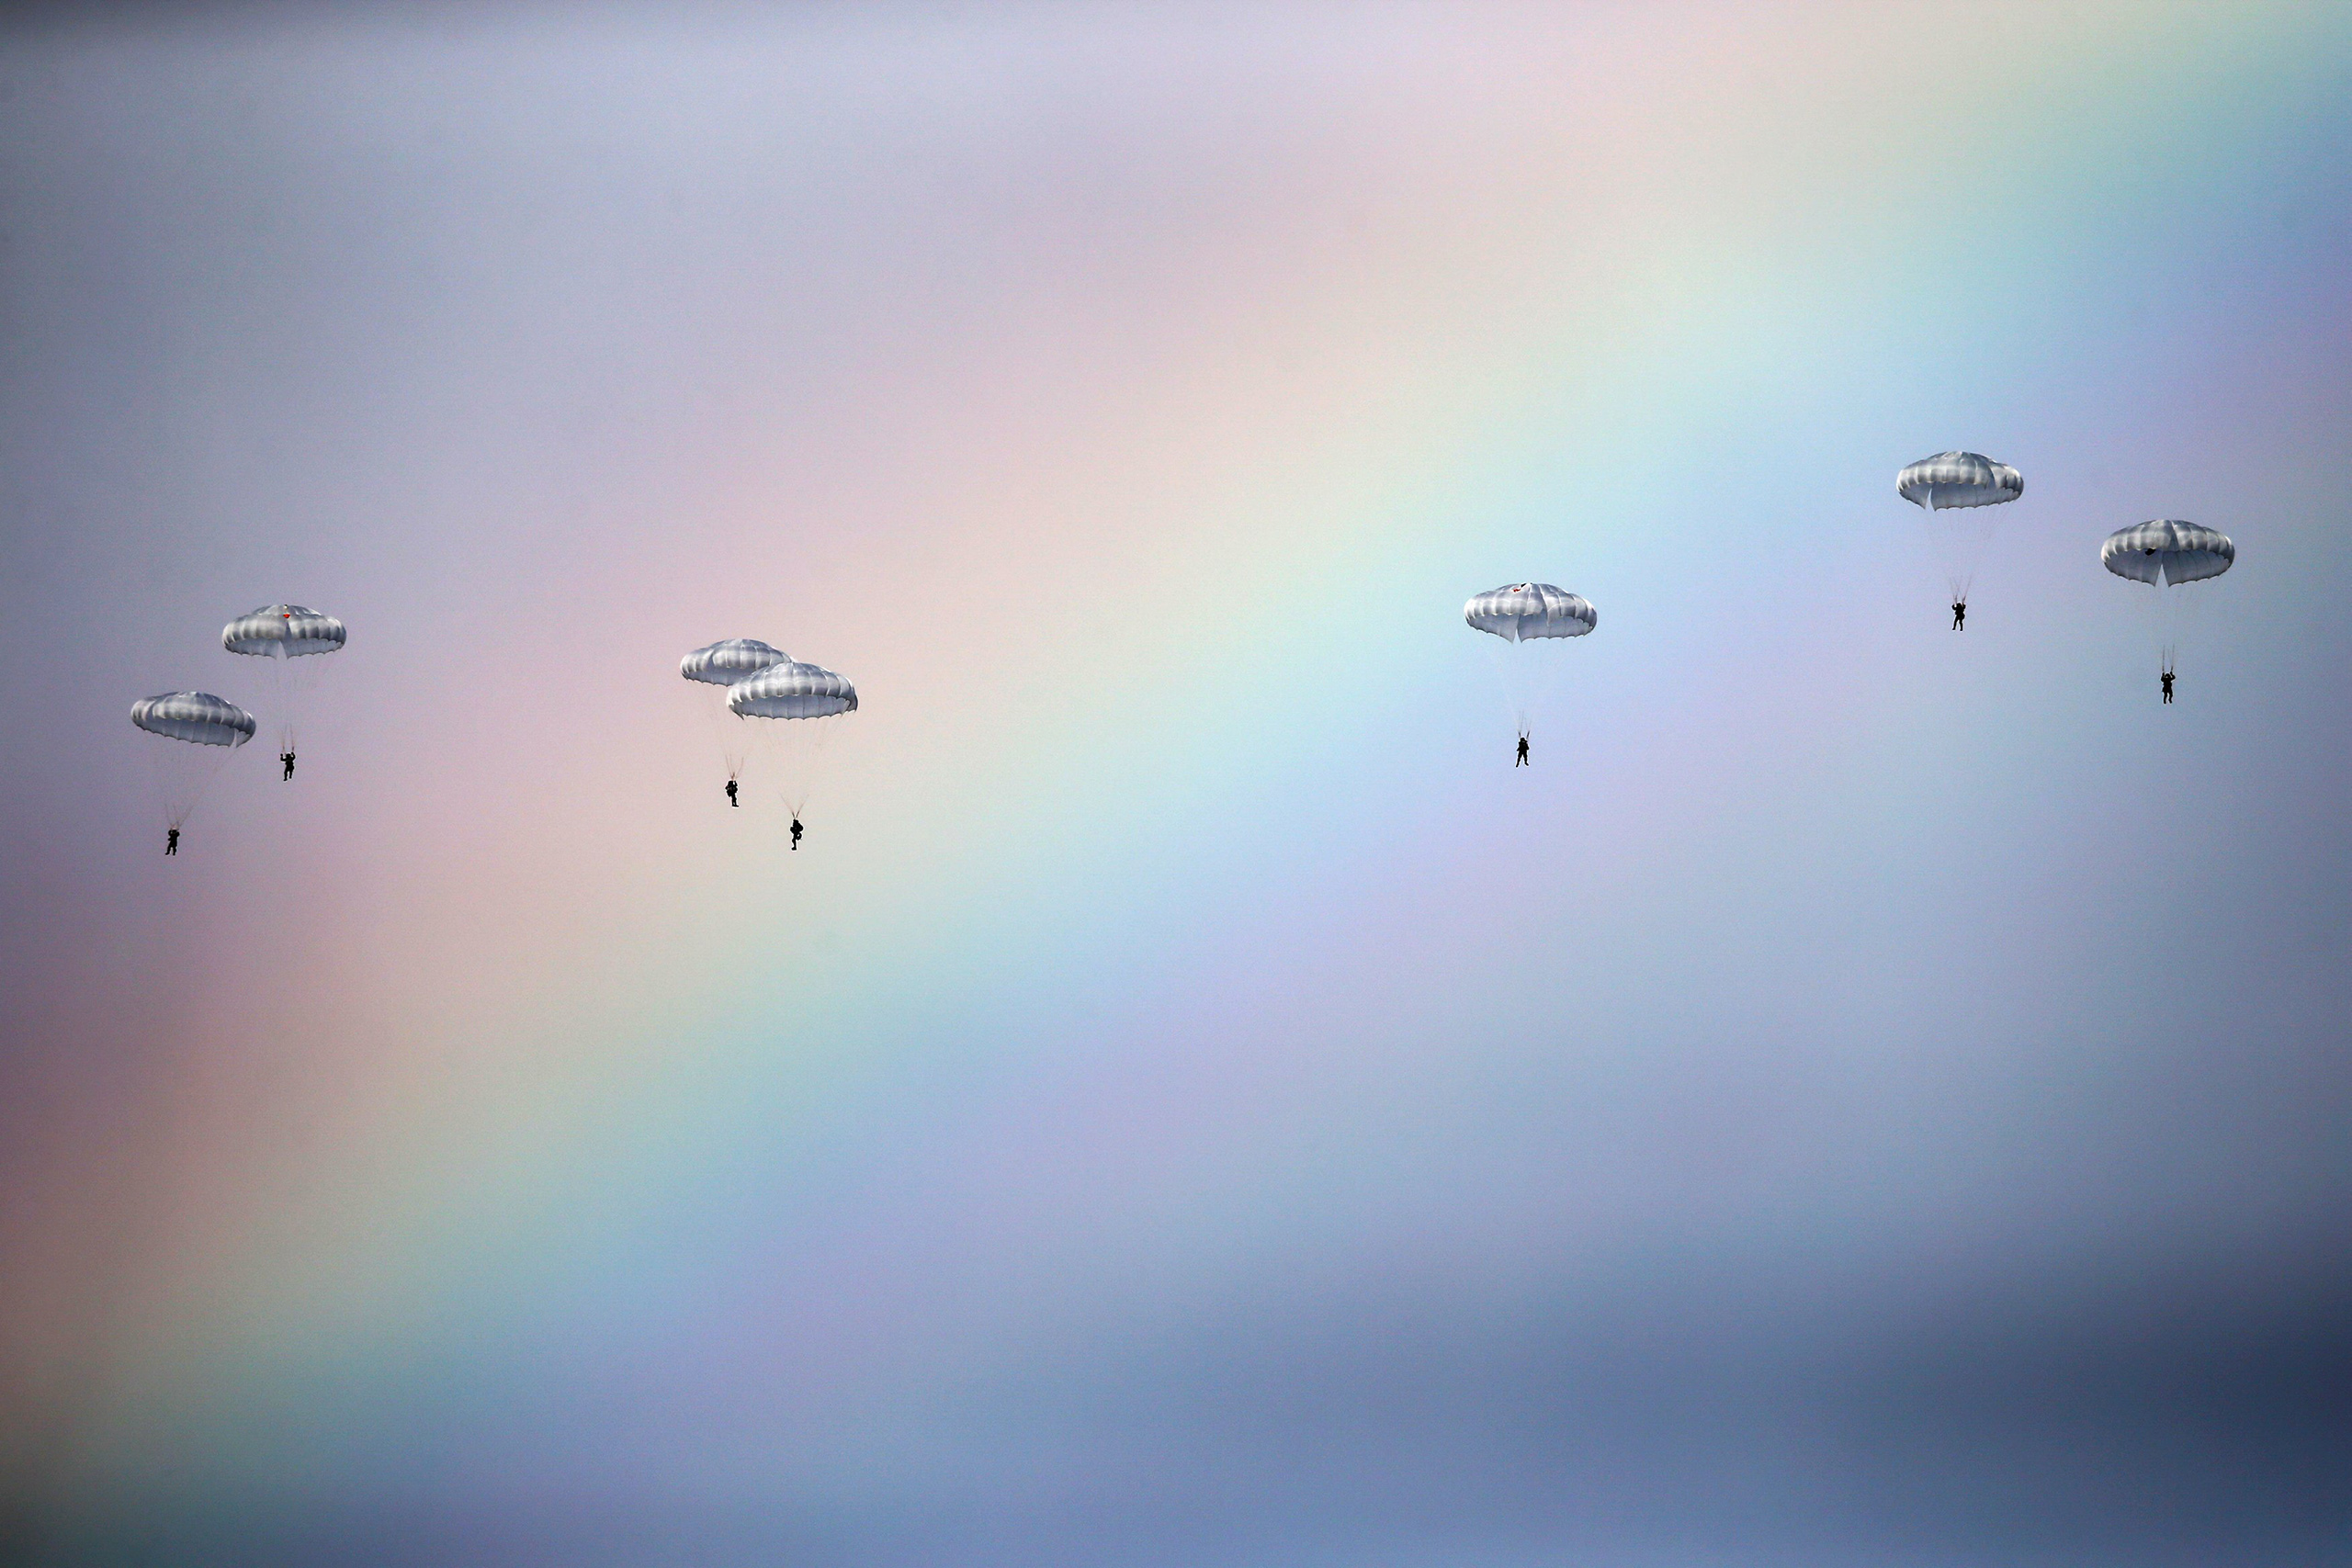 Russian paratroopers jump past a rainbow from an IL-76 transport plane during a joint Serbian-Russian military training exercise  Slavic Brotherhood  in the town of Kovin, near Belgrade, Serbia, on Nov. 7, 2016.